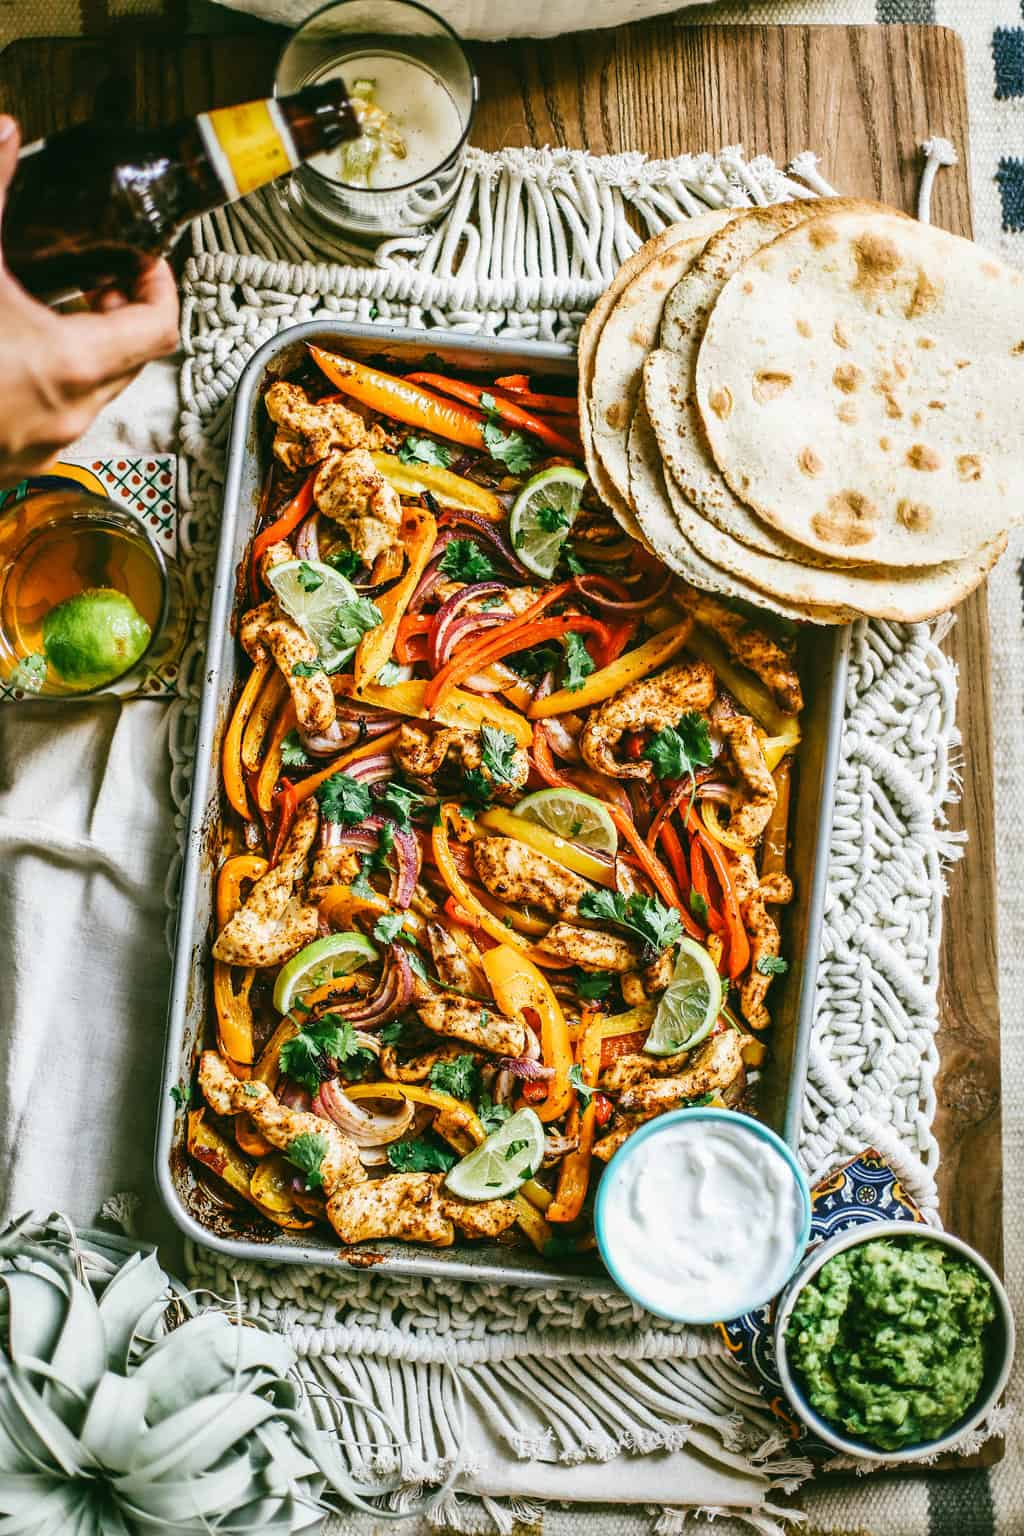 chili lime chicken and vegetables on a sheet pan with flour tortillas on the side